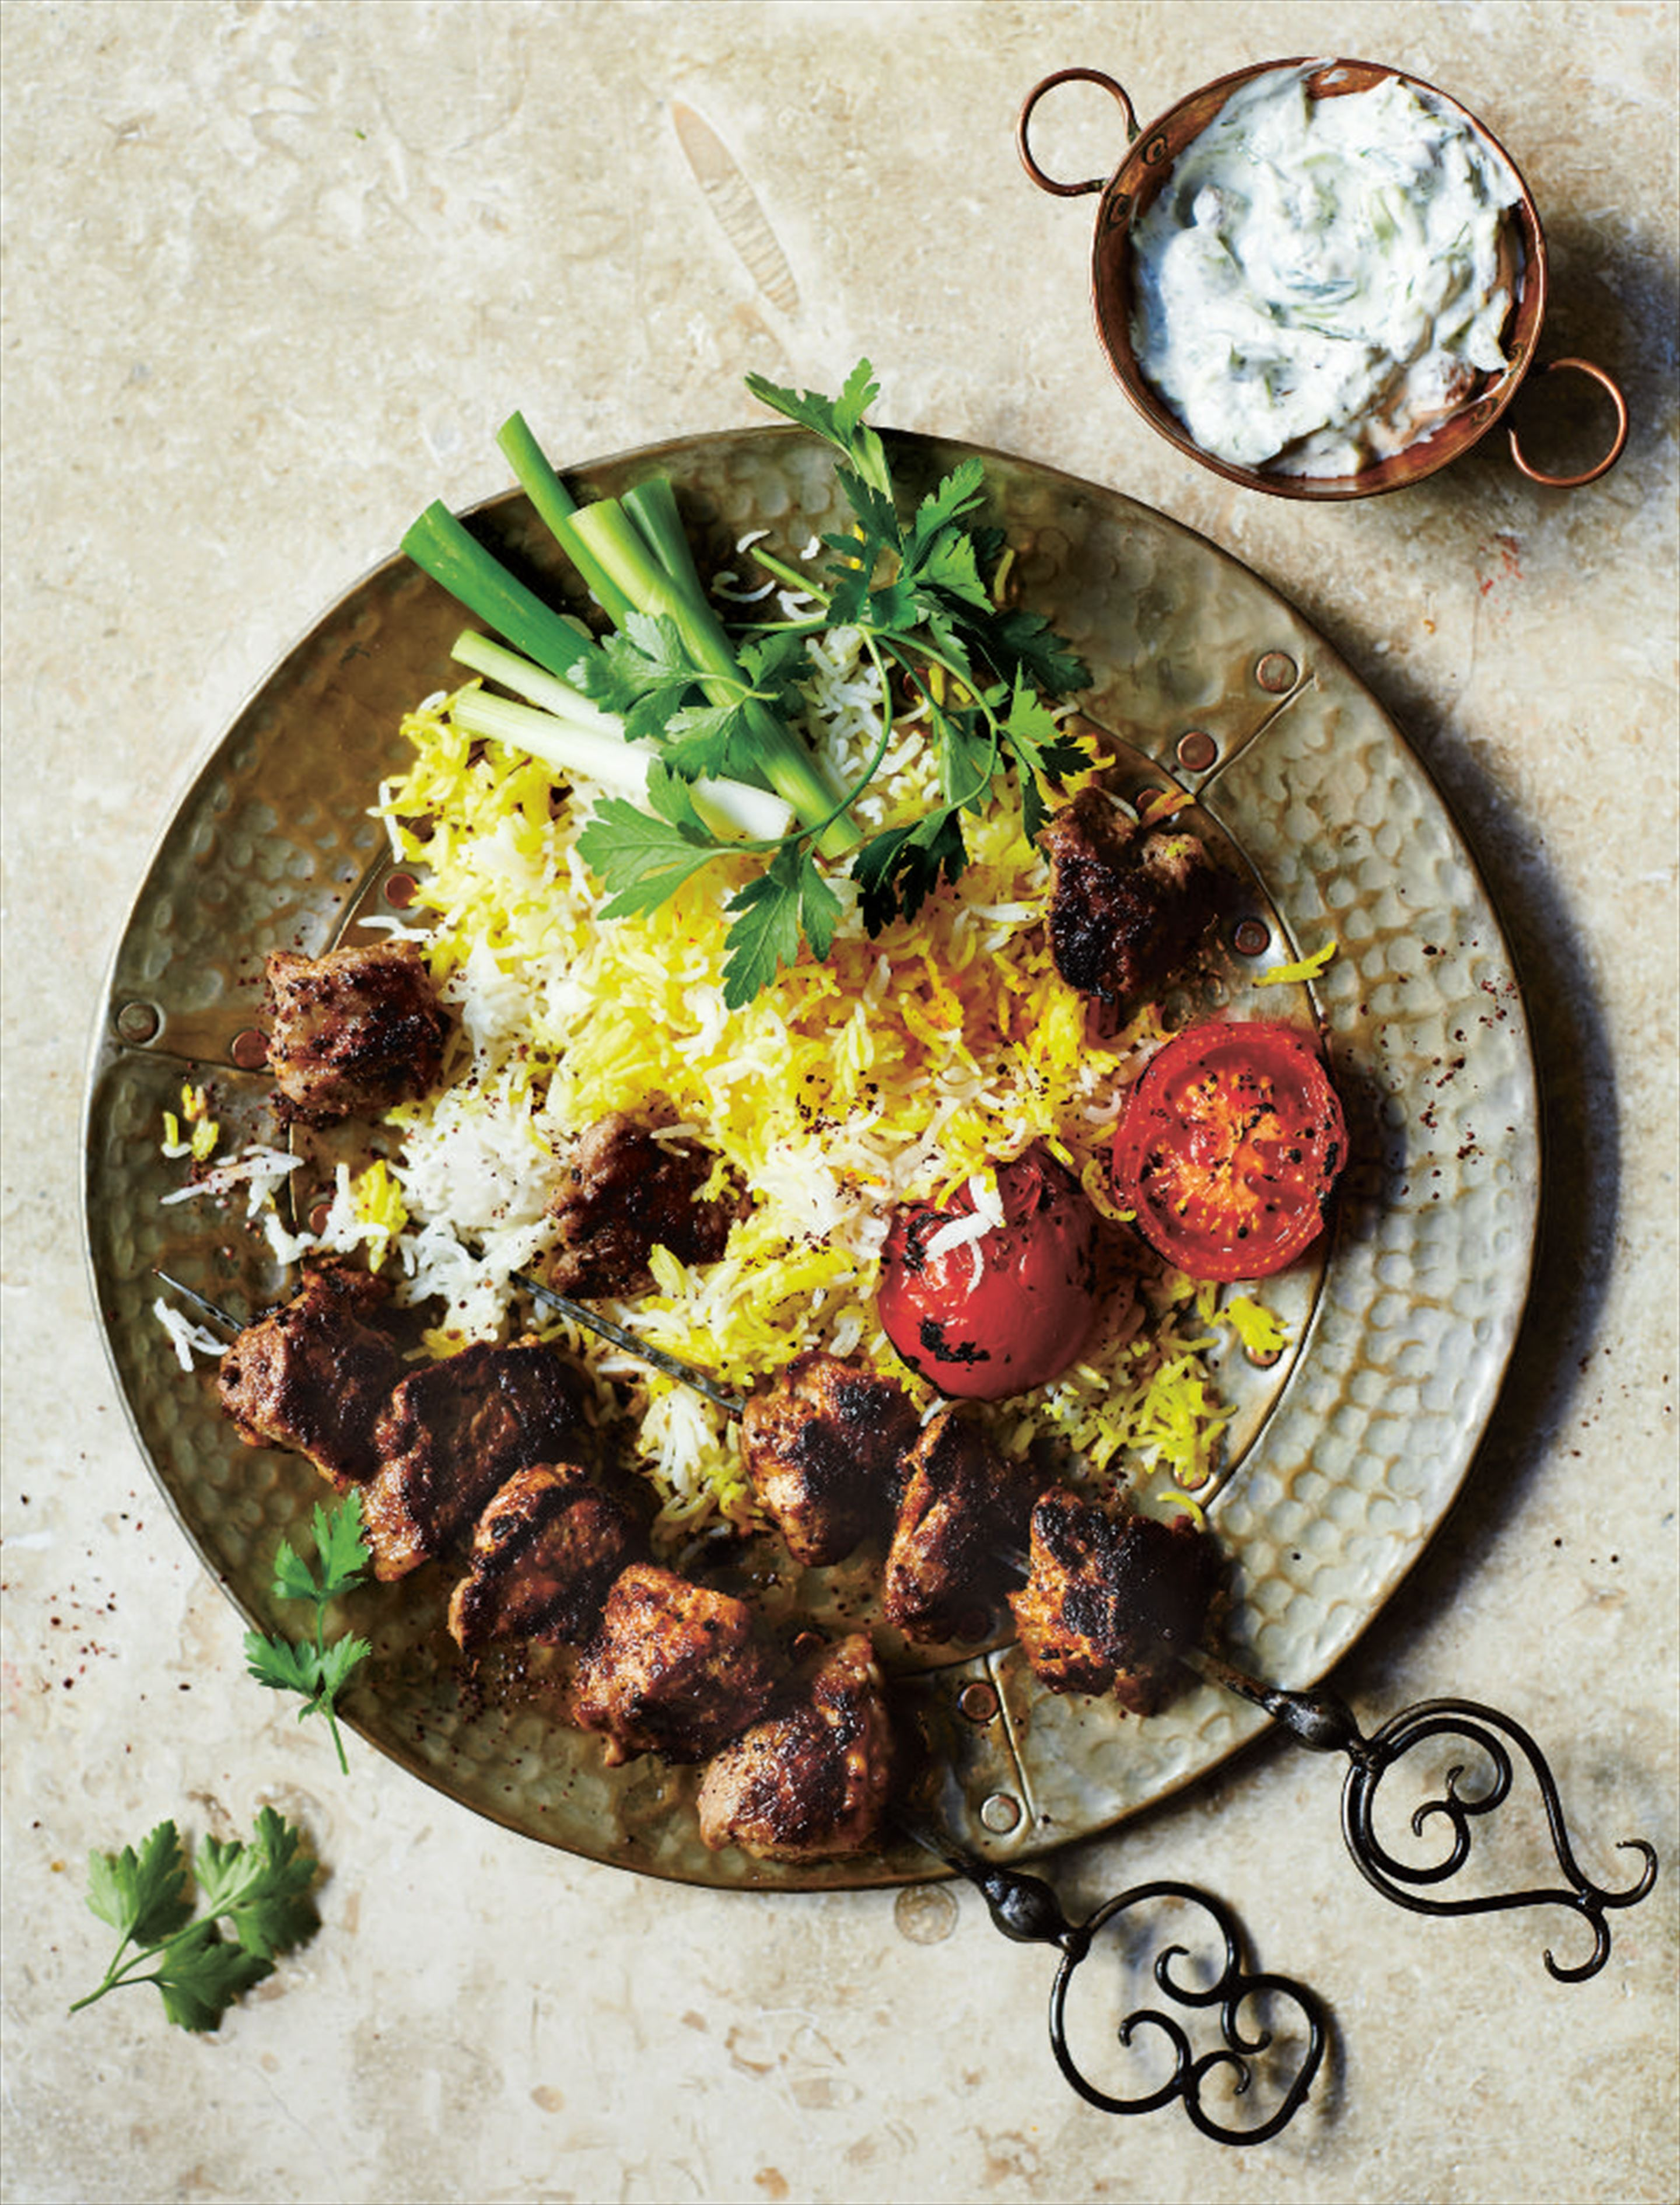 Dr Asaf's juicy lamb kebabs